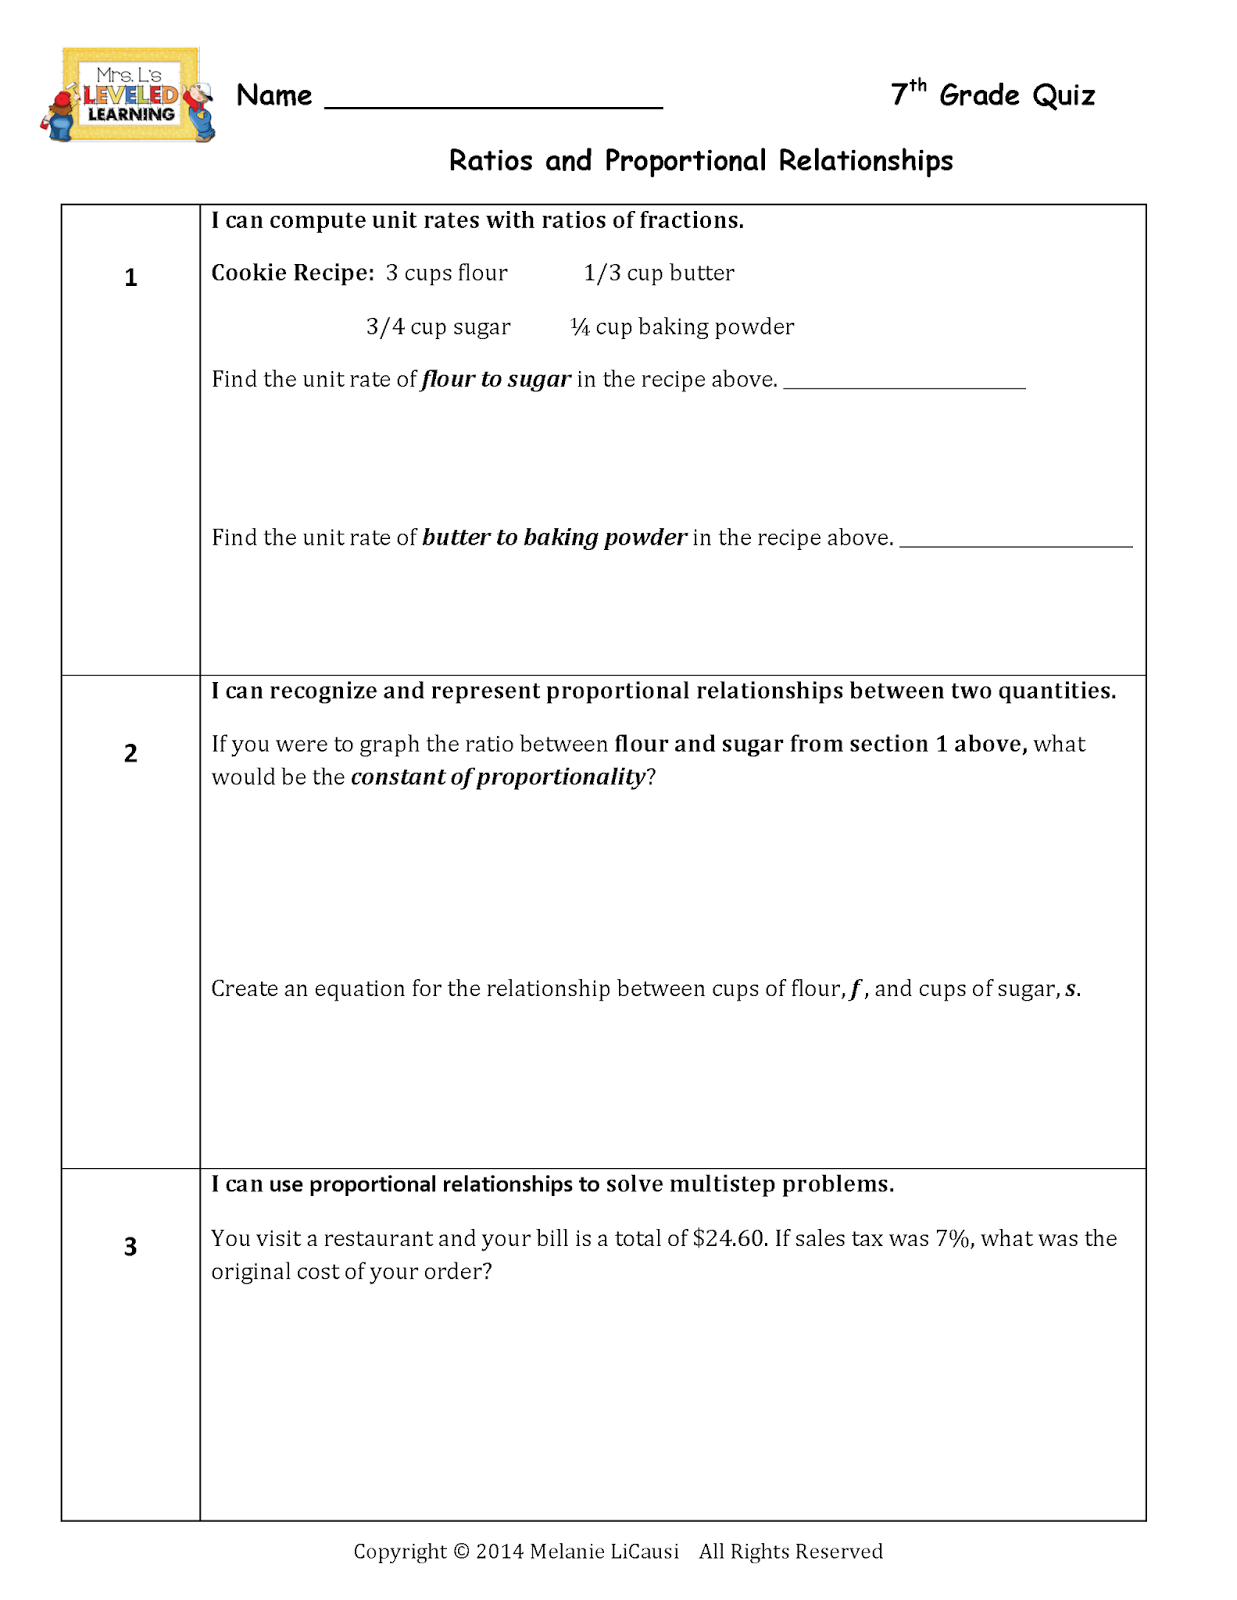 Worksheet 5th Grade Math Questions Mikyu Free Worksheet – 8th Grade Math Worksheets Pdf